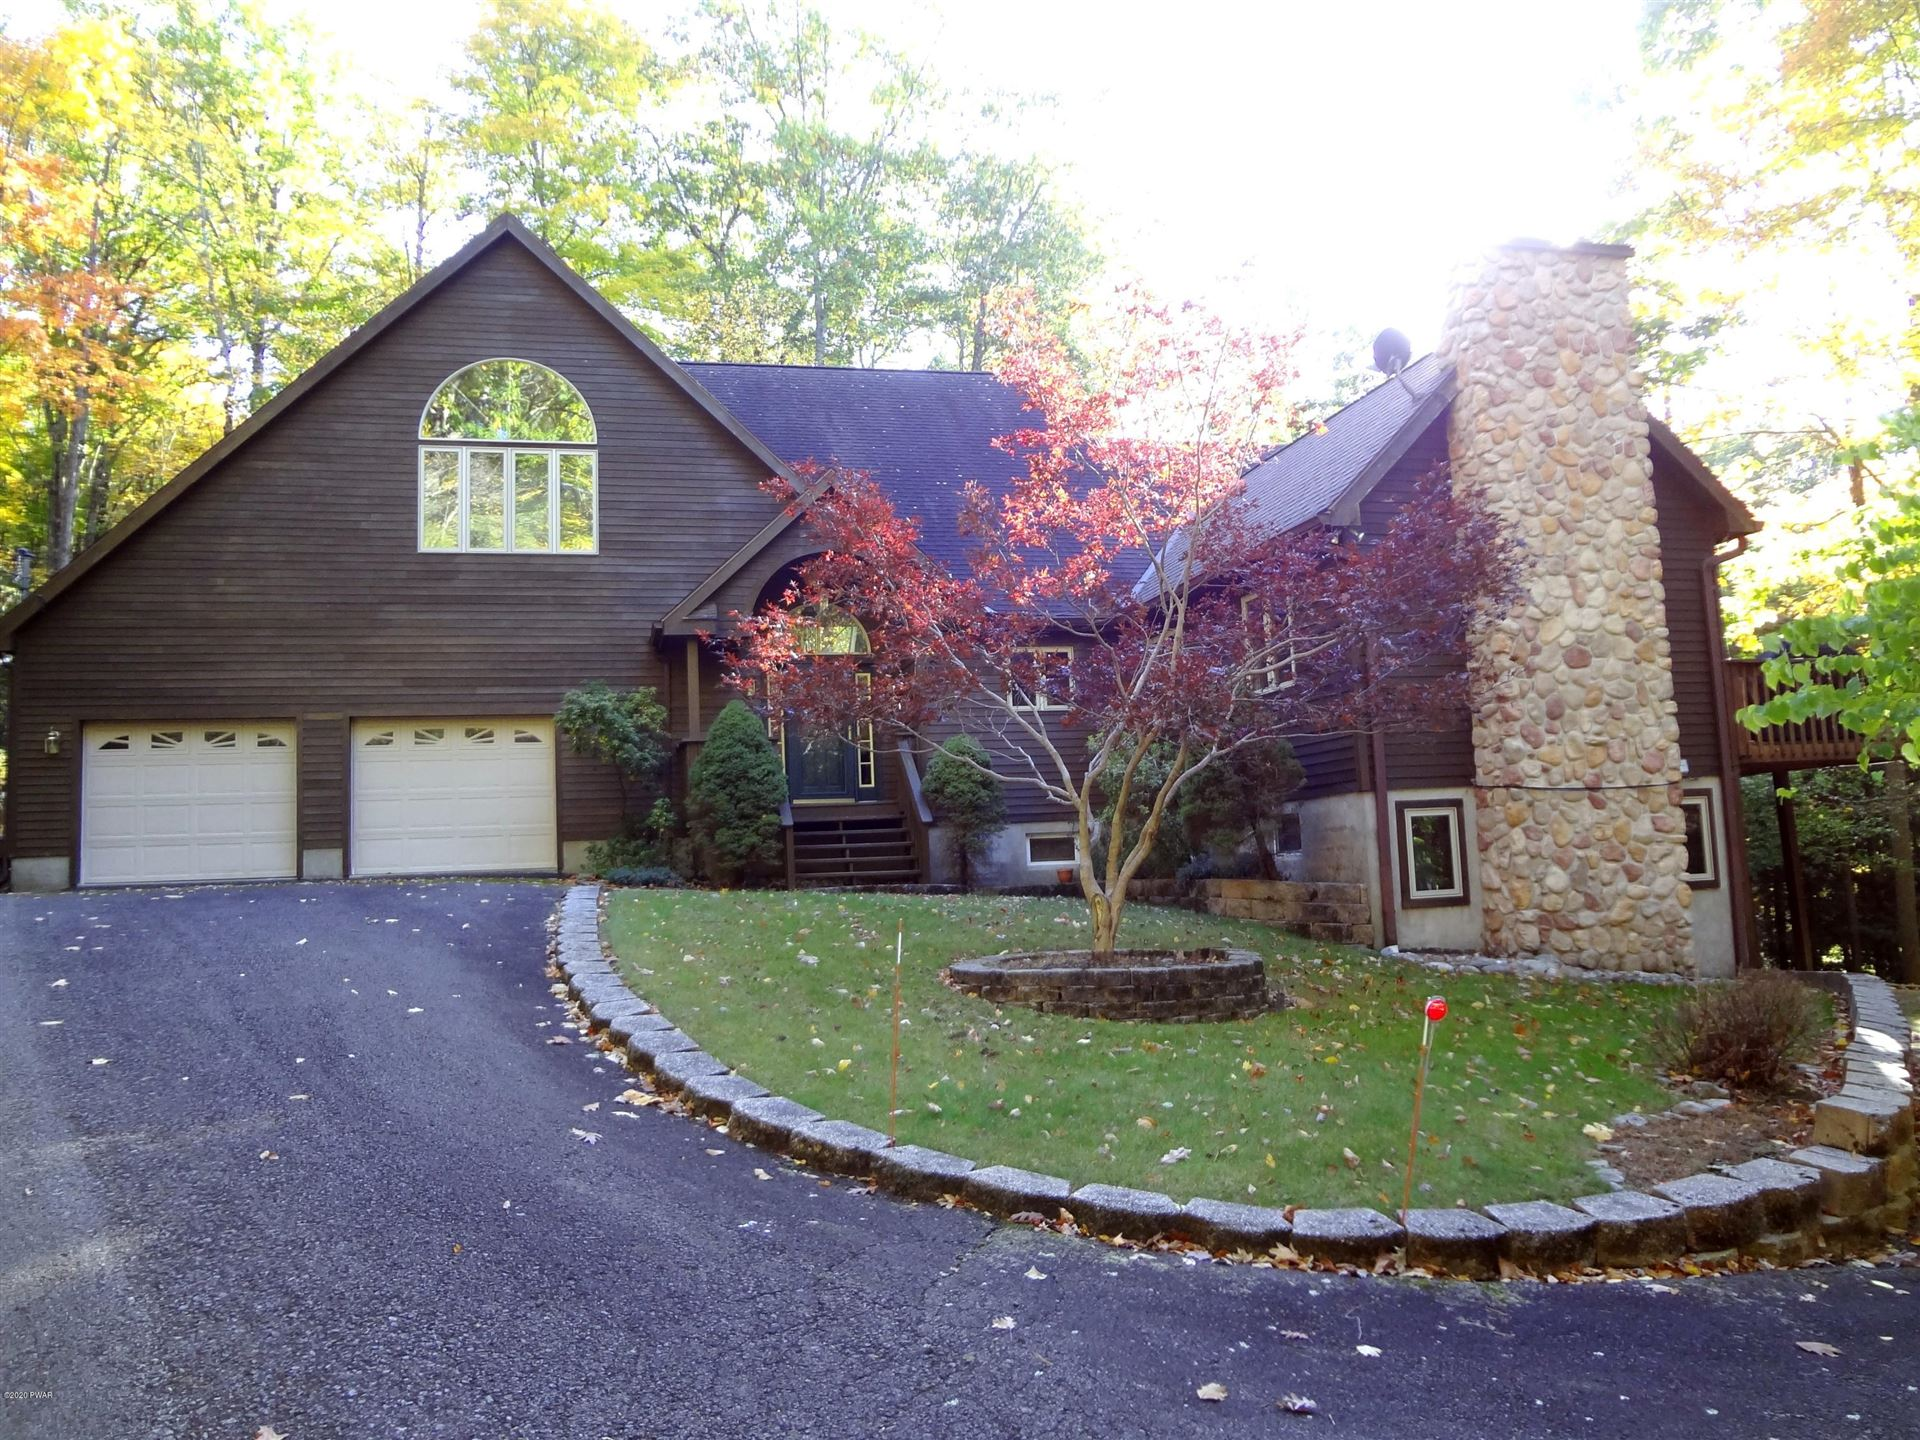 Photo of 147 N Evergreen Dr, Greentown, PA 18426 (MLS # 20-4210)